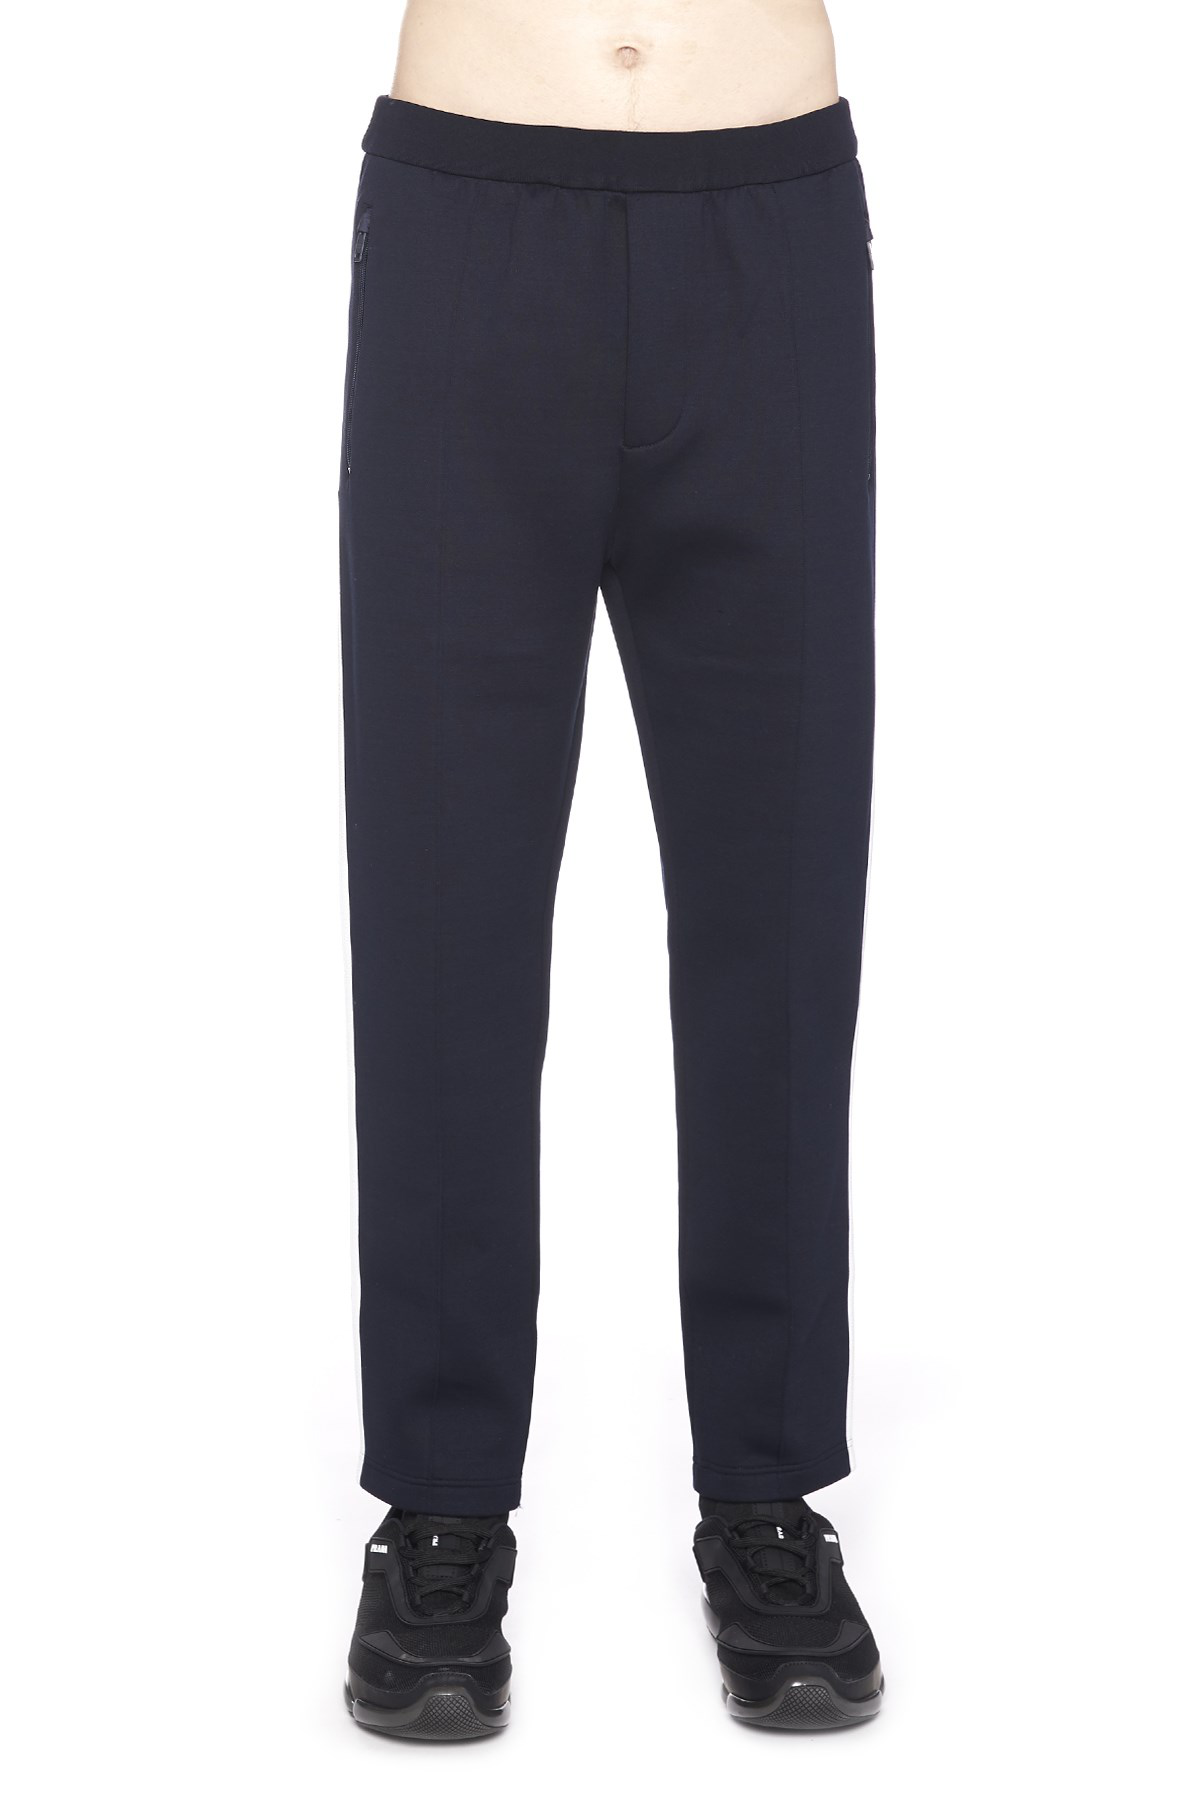 Prada Technical Jersey Jogging Trousers - 蓝色 In Blue